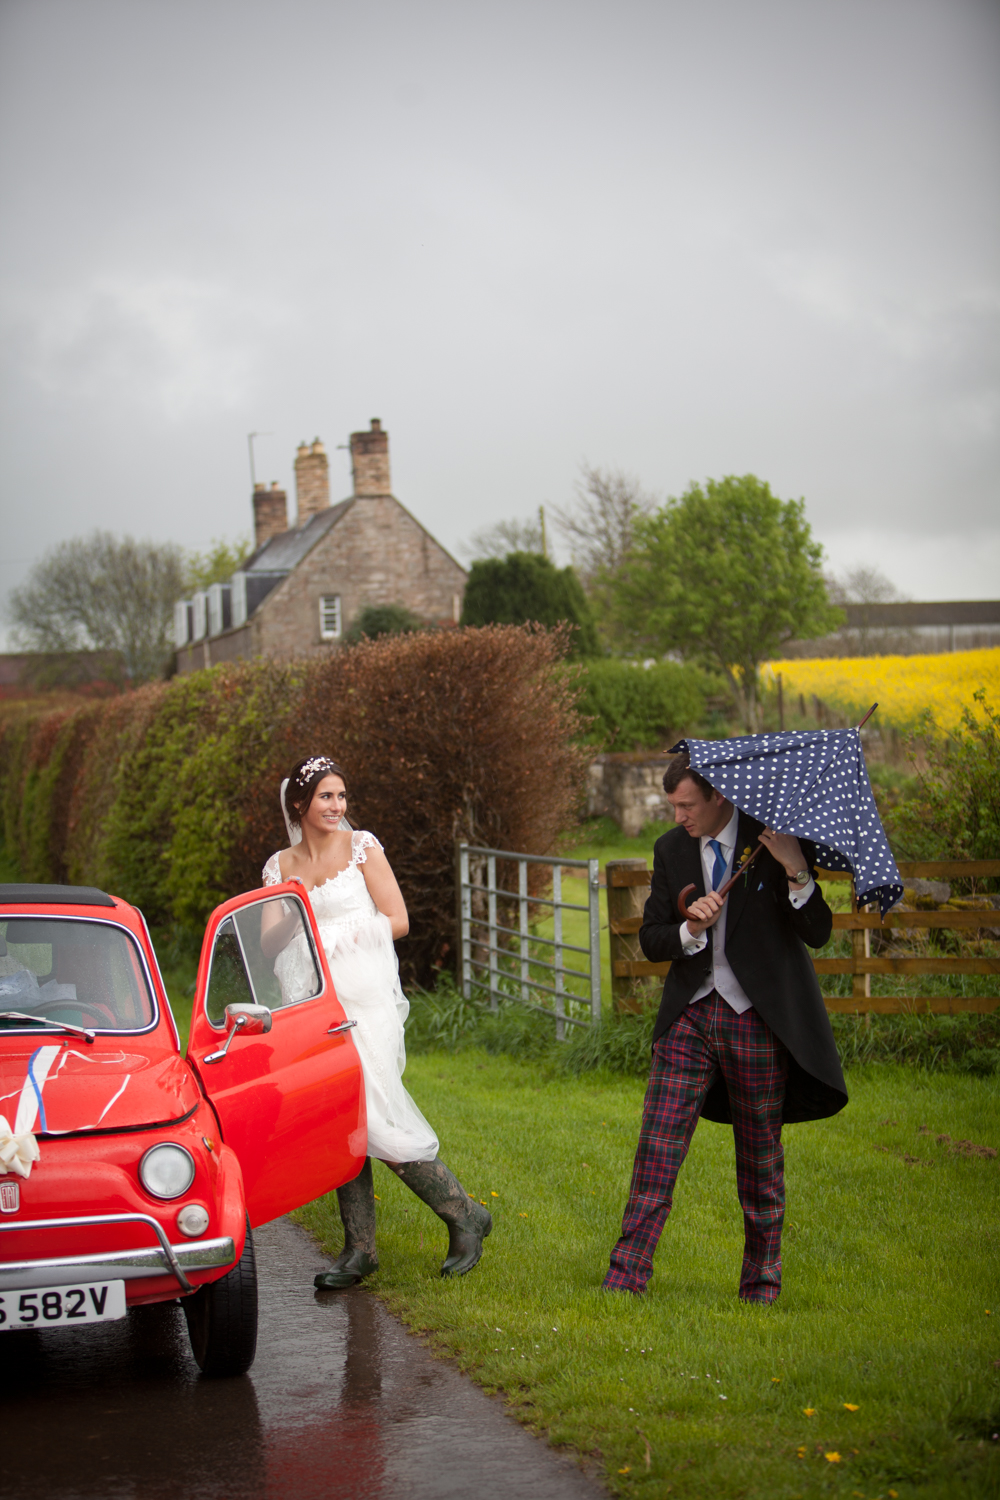 PICTORIAL_BERWICK_WEDDING_FARM_MARQUEE_RAIN_WEATHER_ROTHBURY_MINI_STYLE-6599.jpg